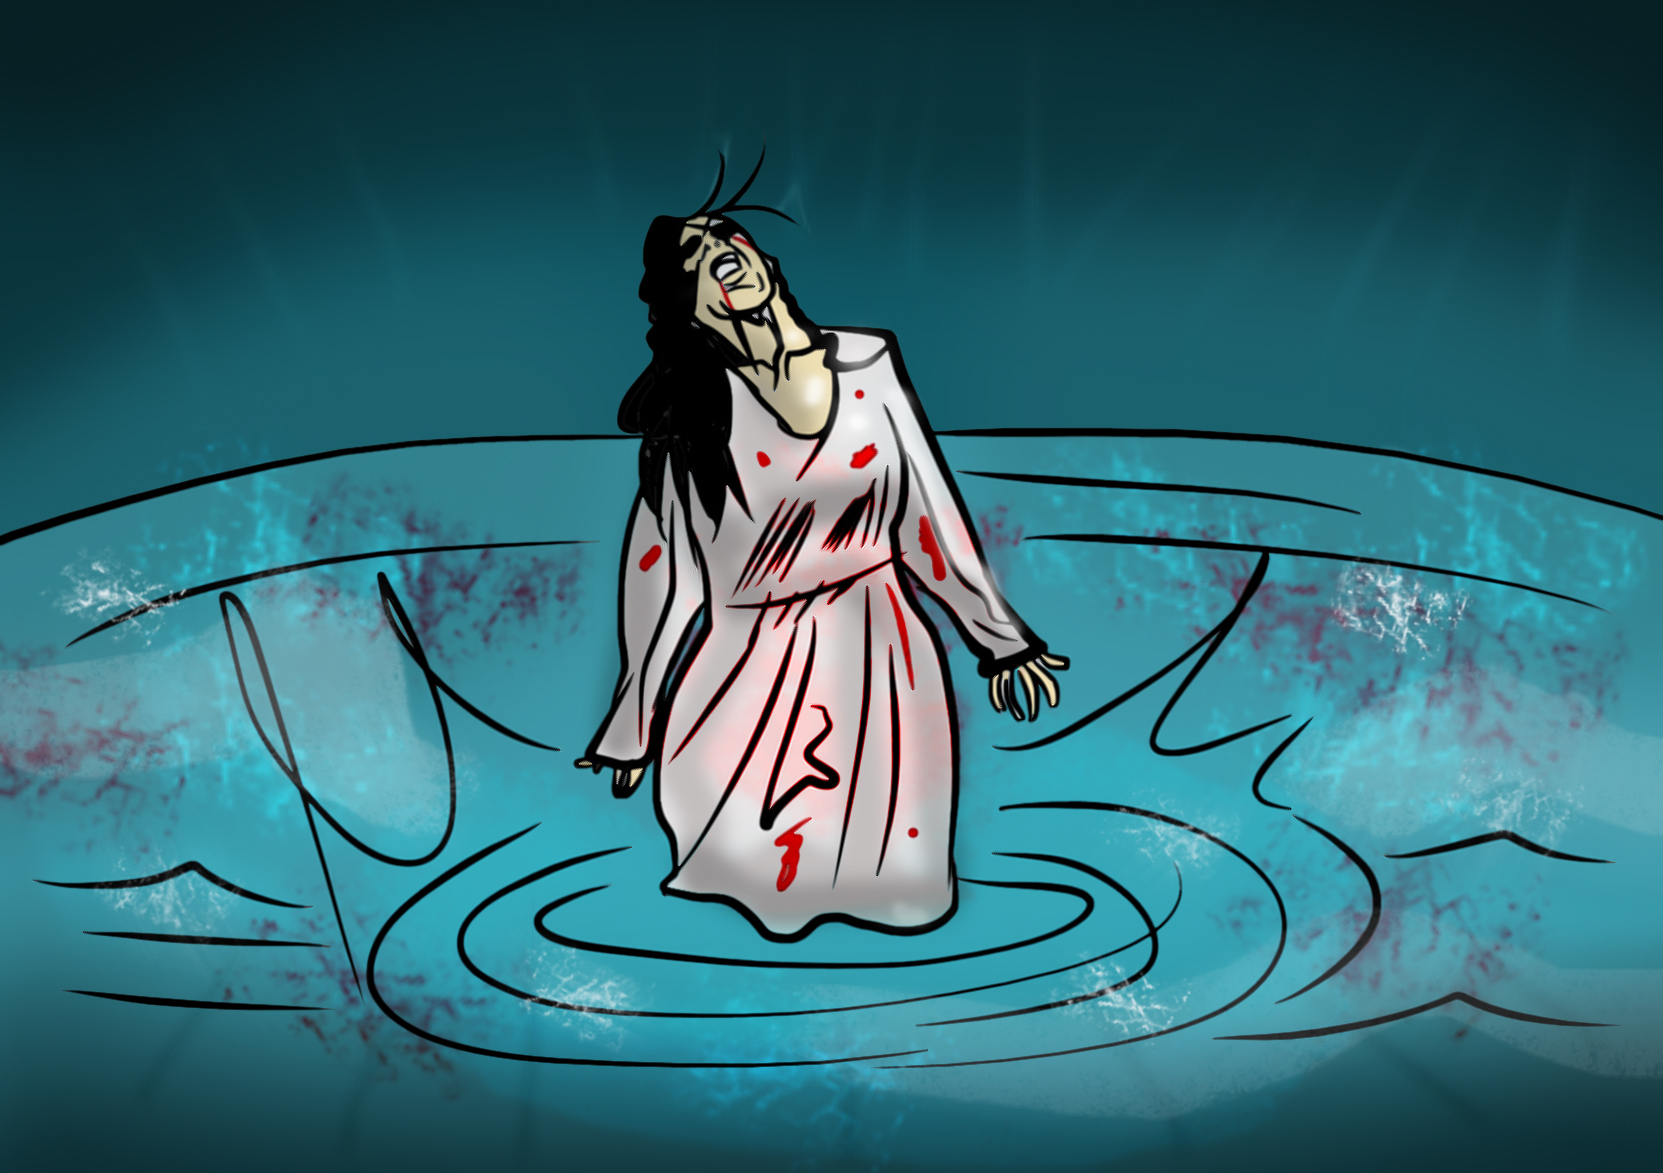 la llorona illustration.jpg